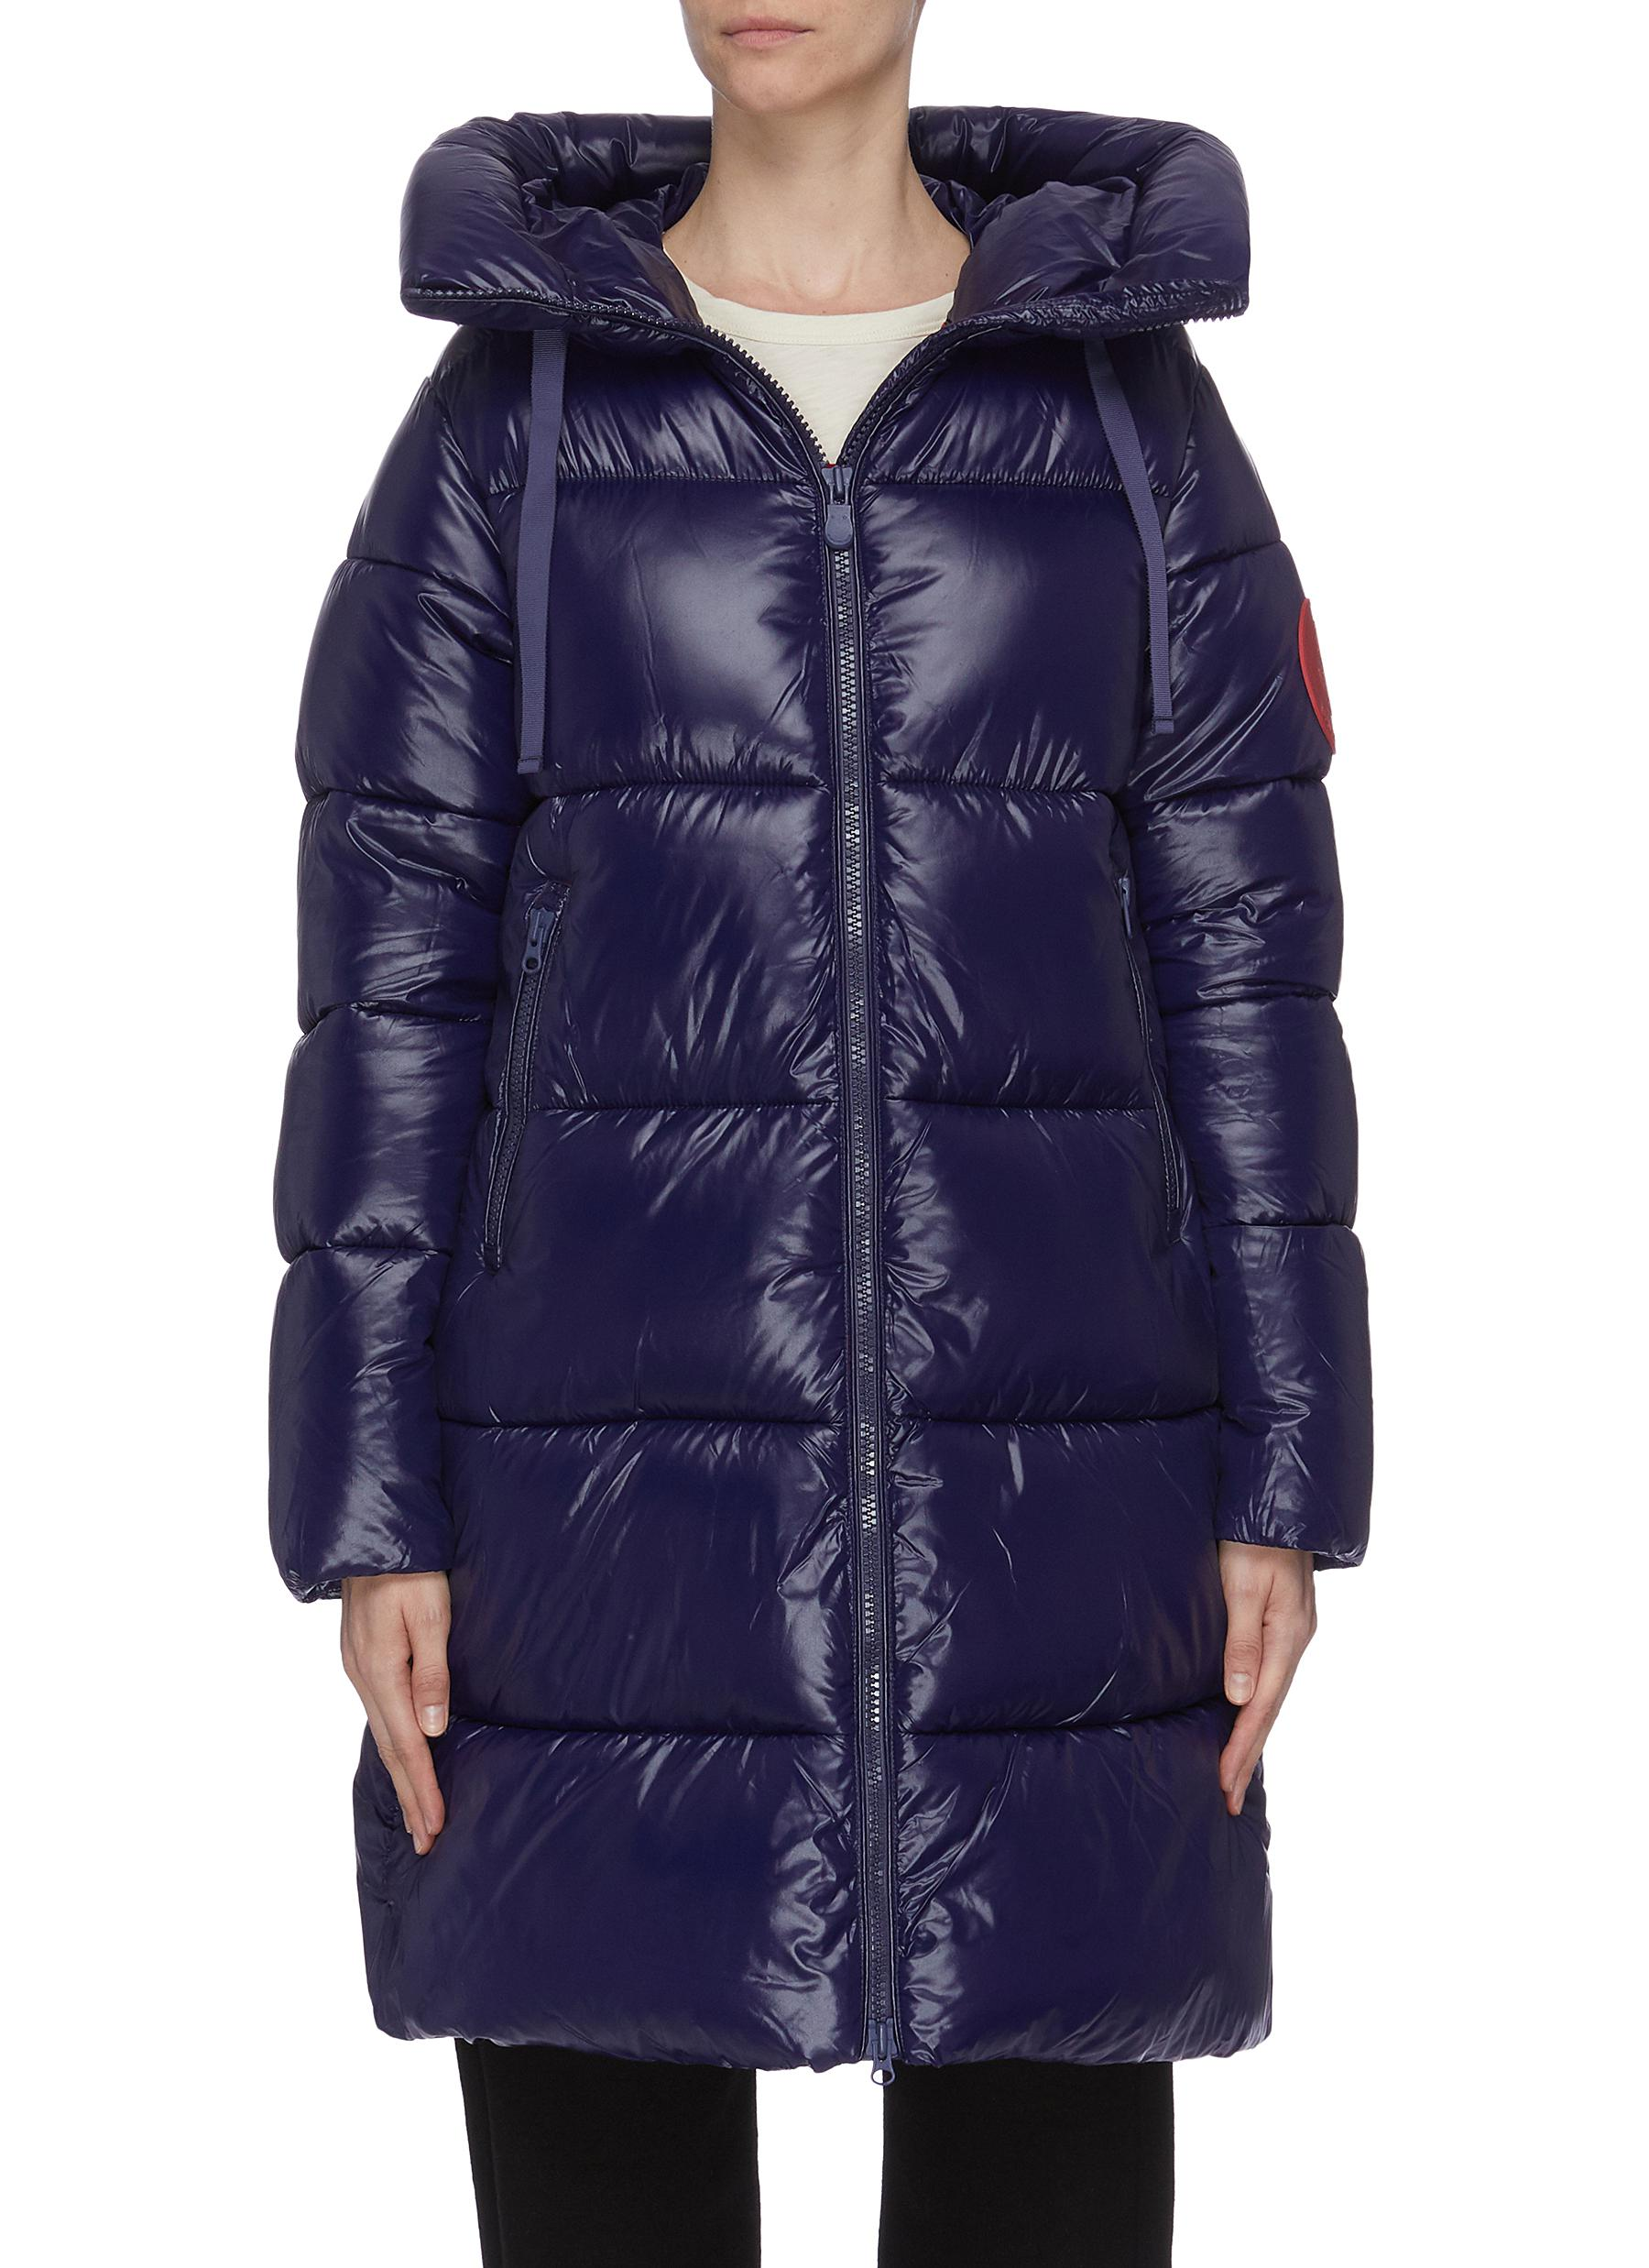 Hooded puffer coat by Save The Duck